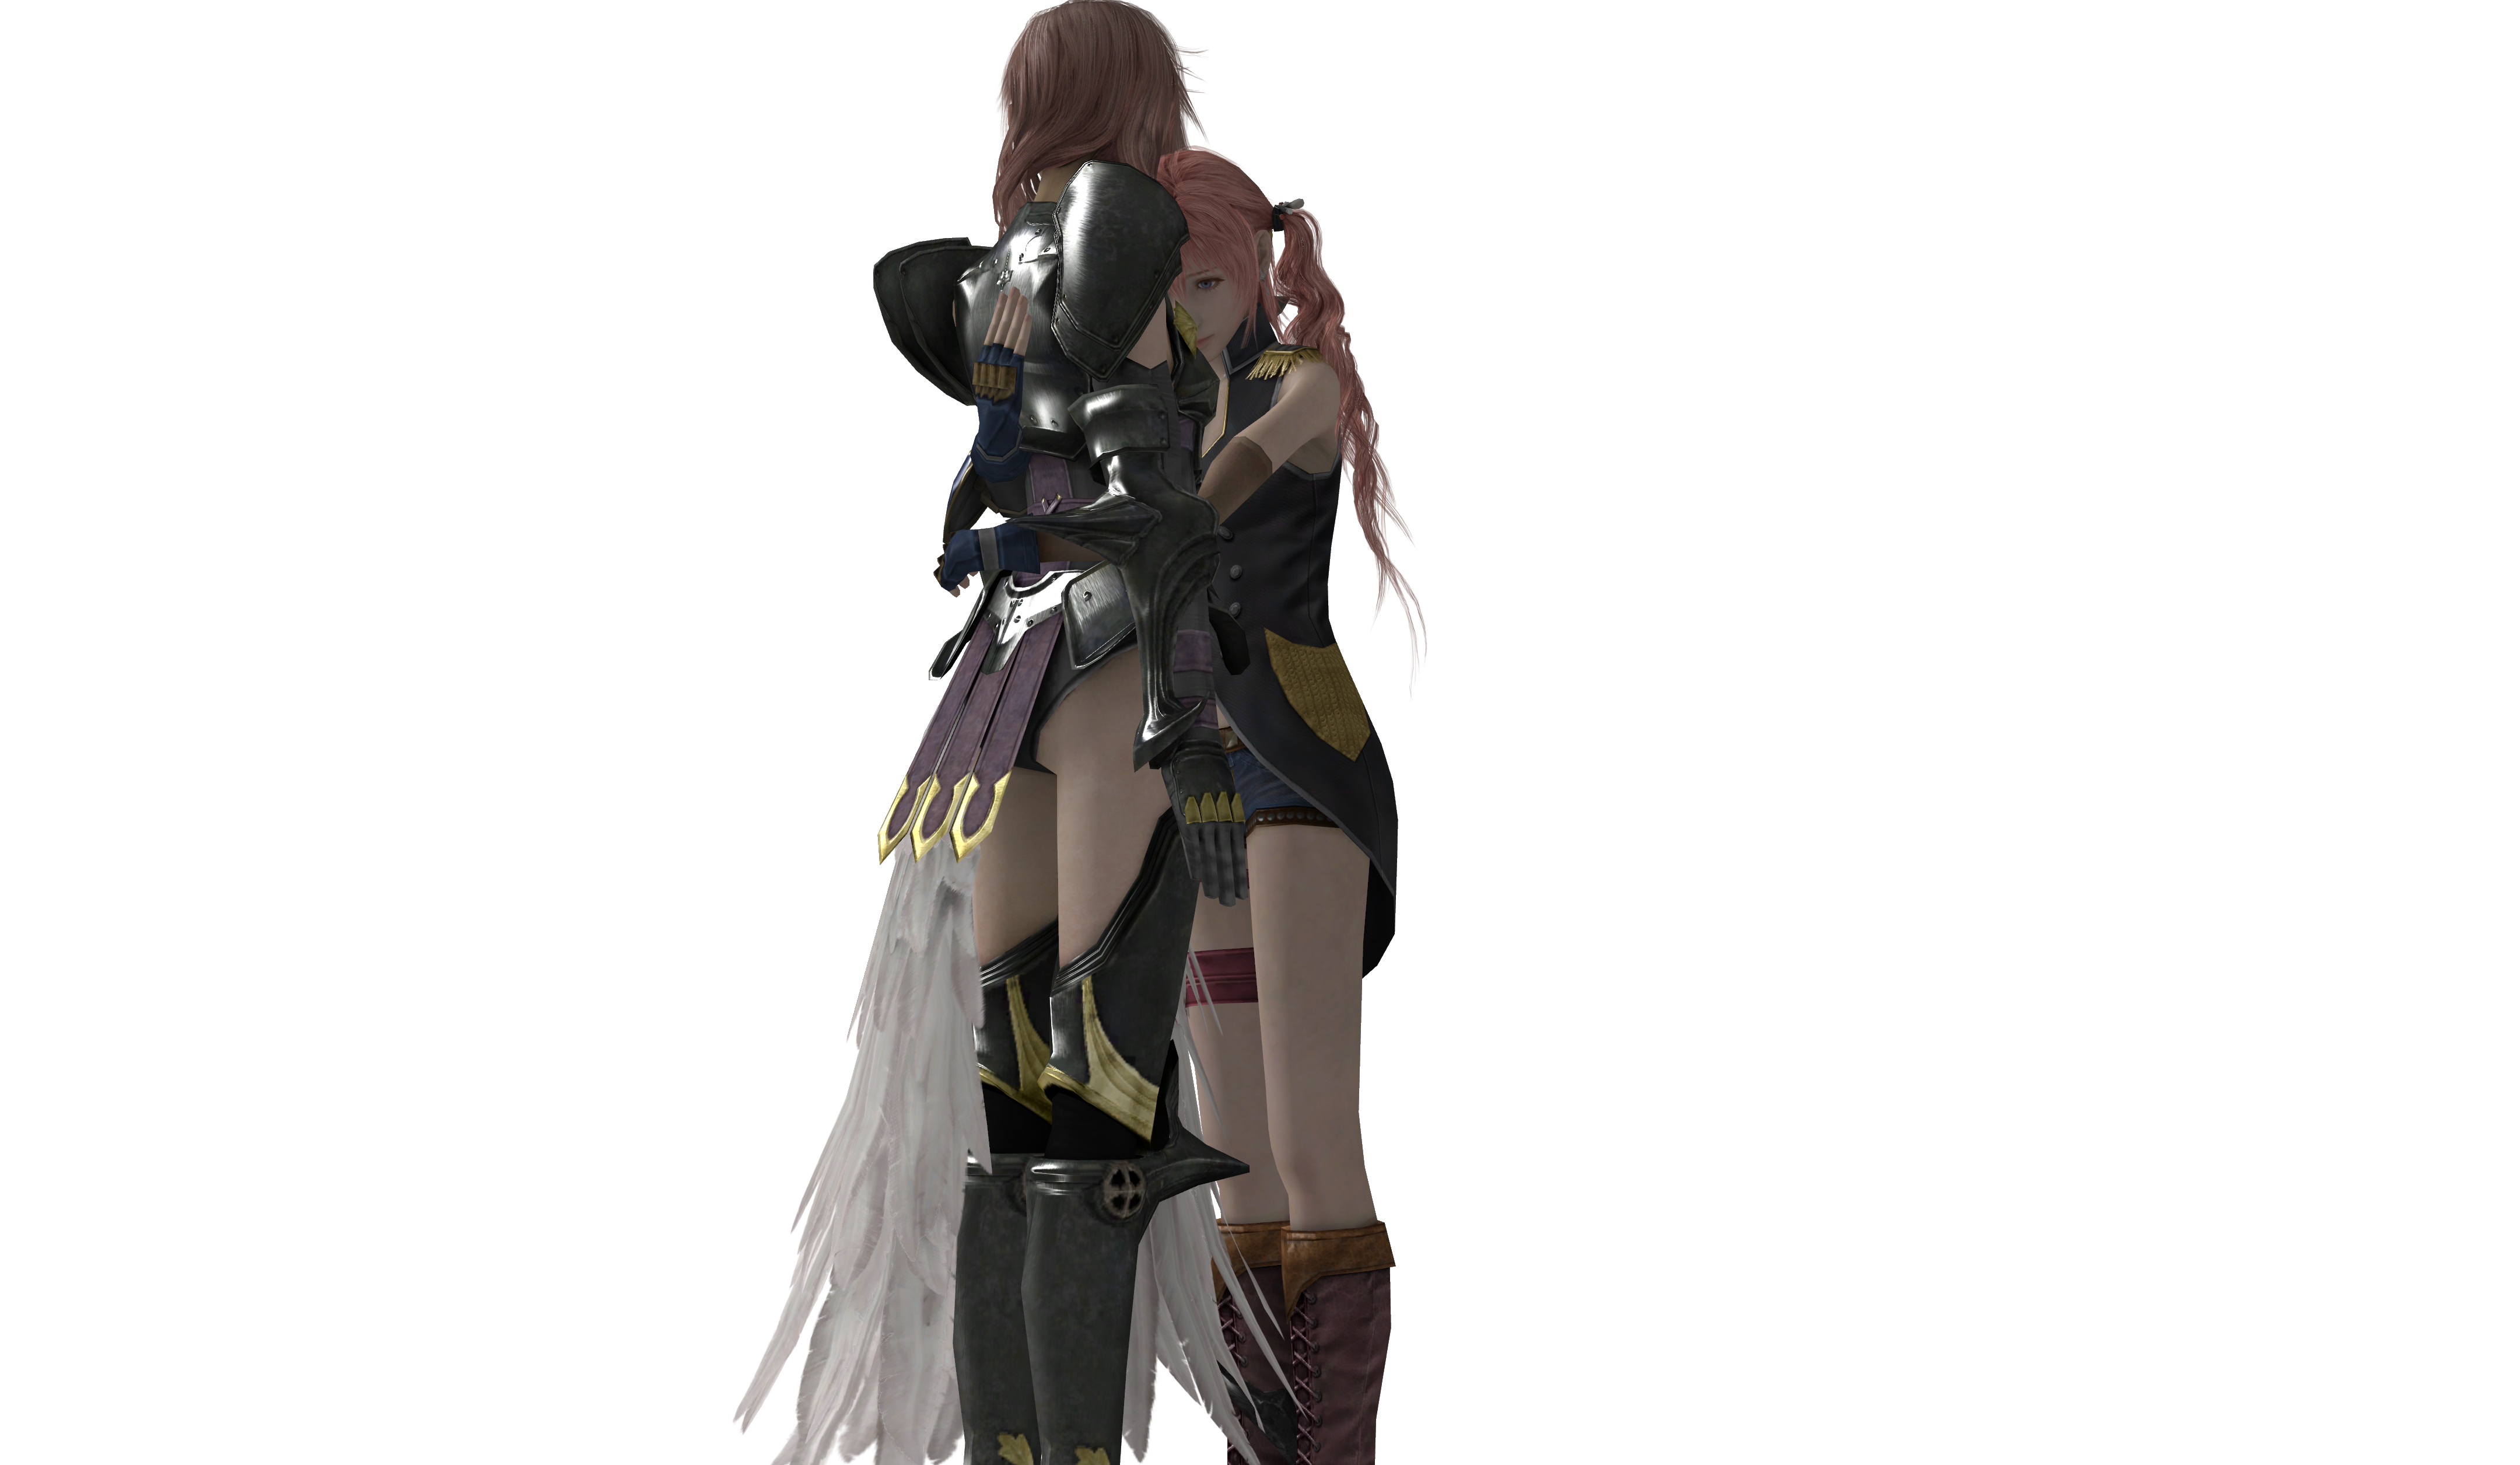 Final Fantasy XIII - Lightning and Serah 2 by SilverMoonCrystalFinal Fantasy Serah And Lightning